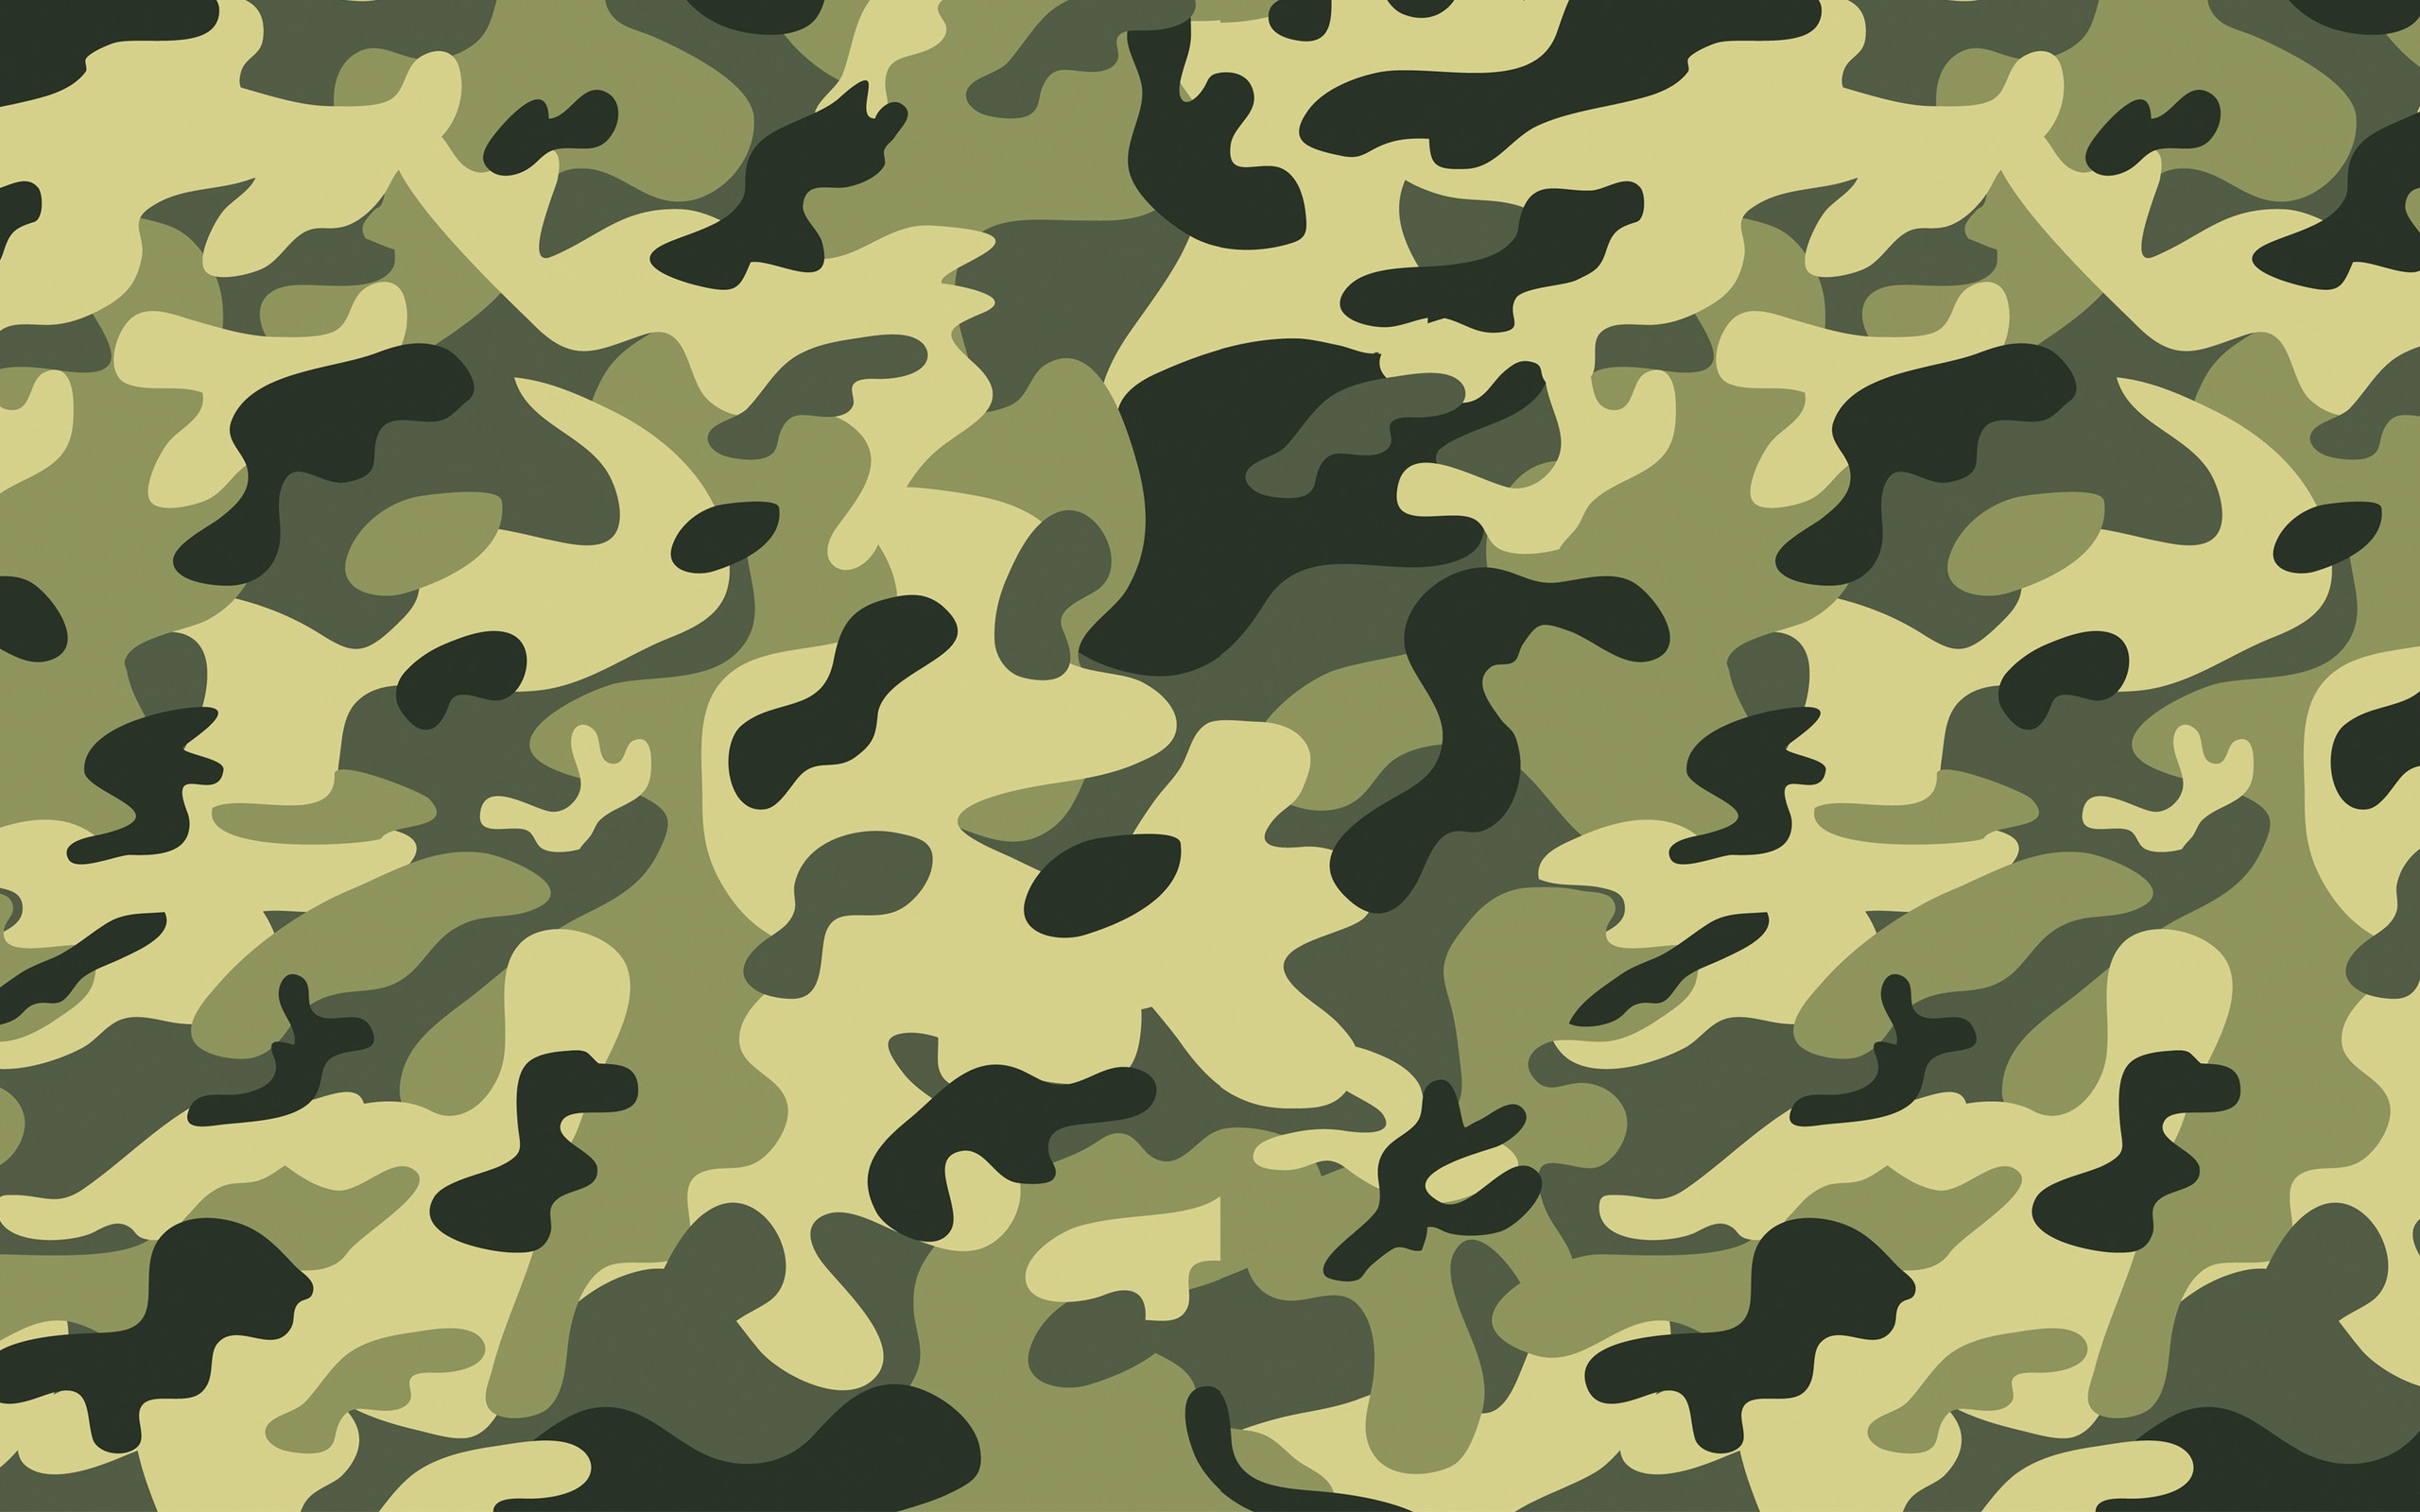 Wallpaper Camo Border Illustrazion 2560x1600